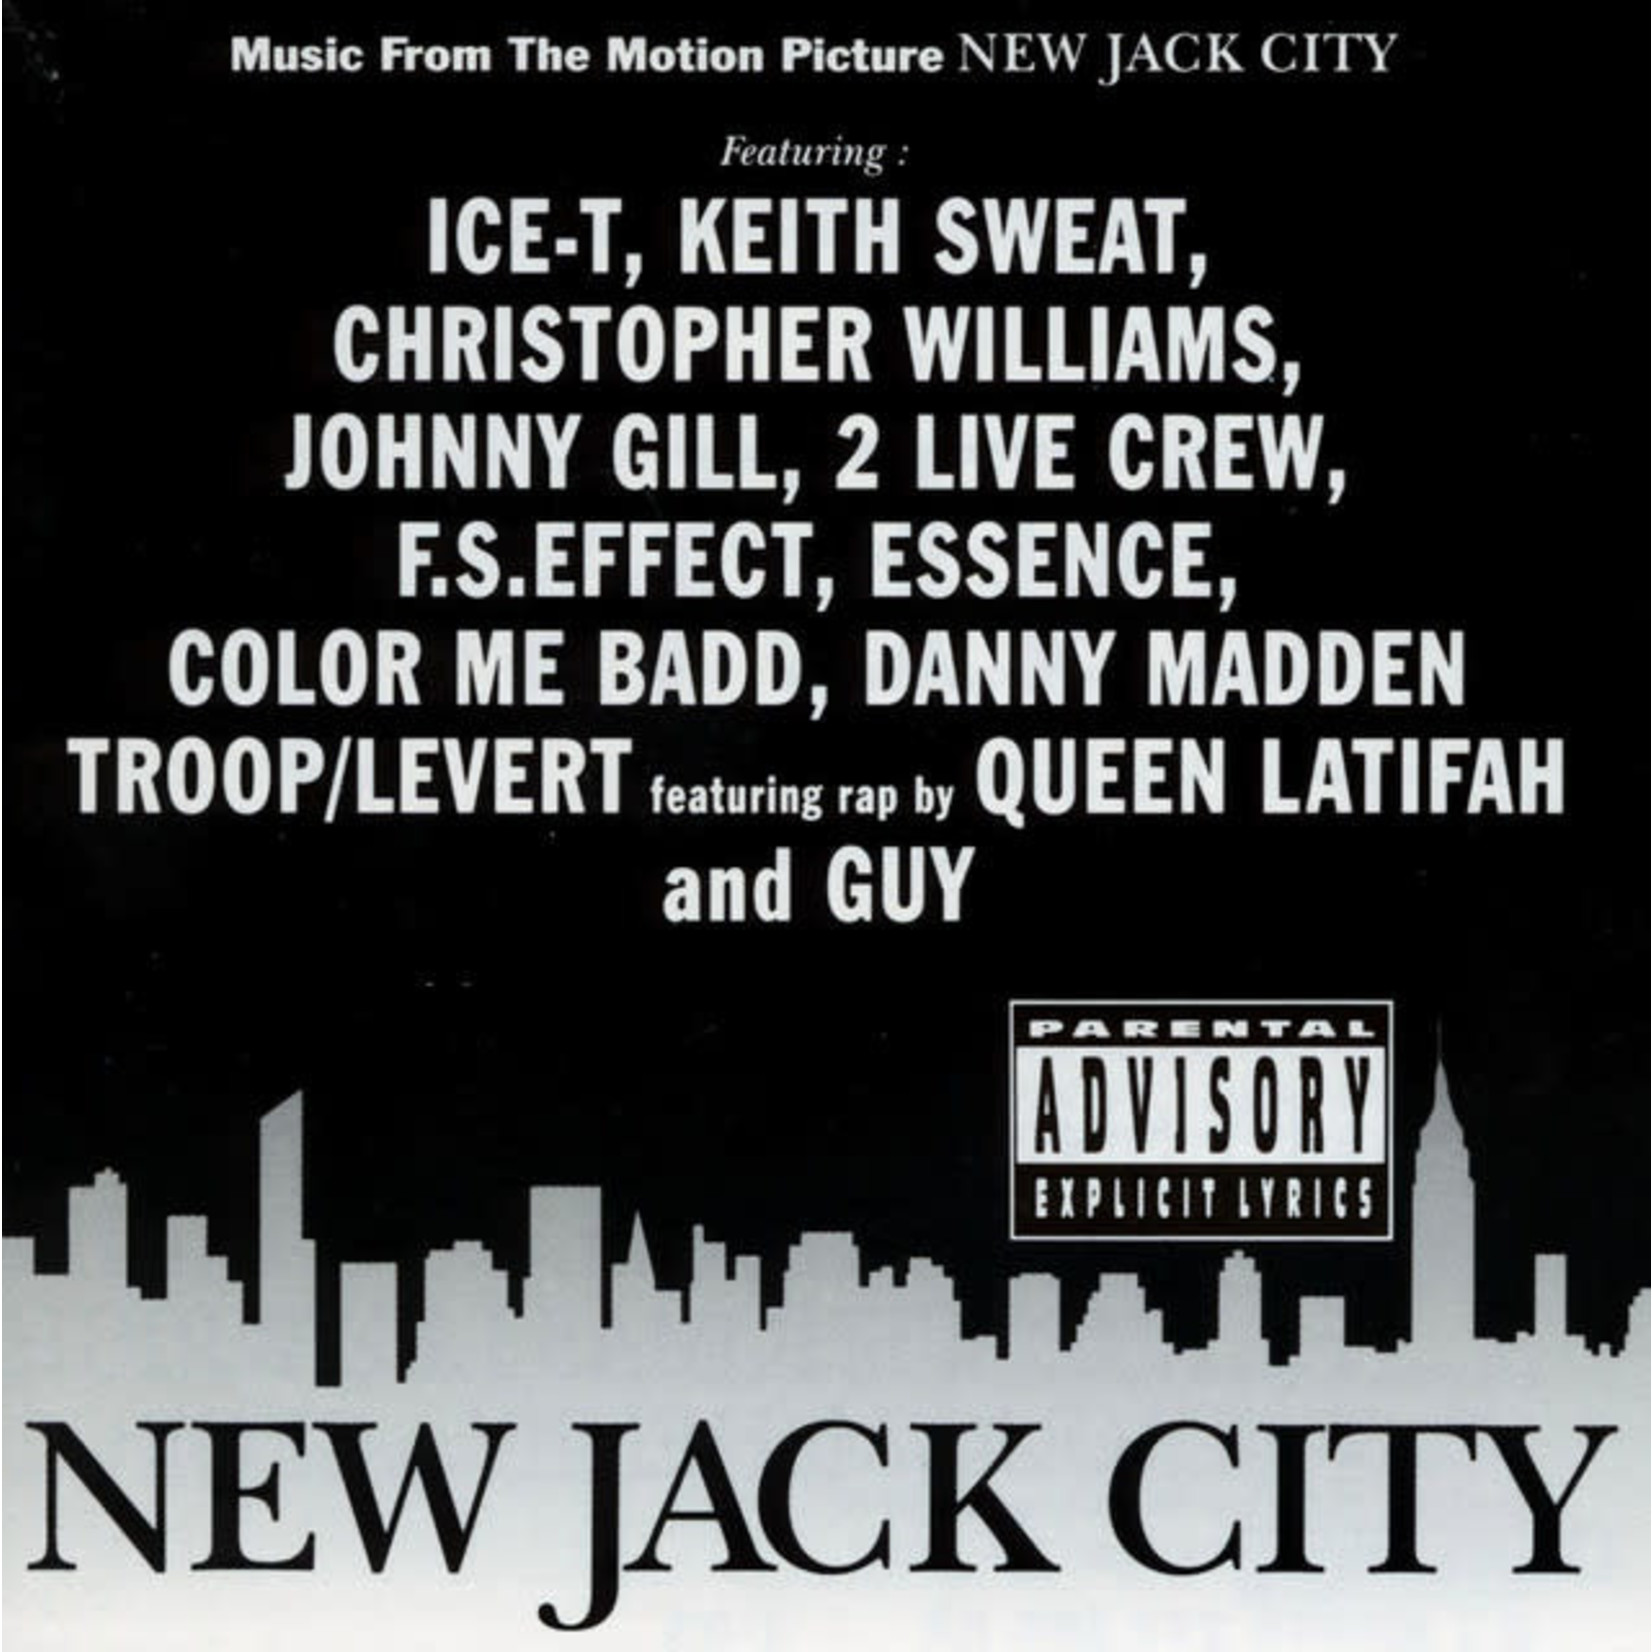 Vinyl New Jack City - Soundtrack